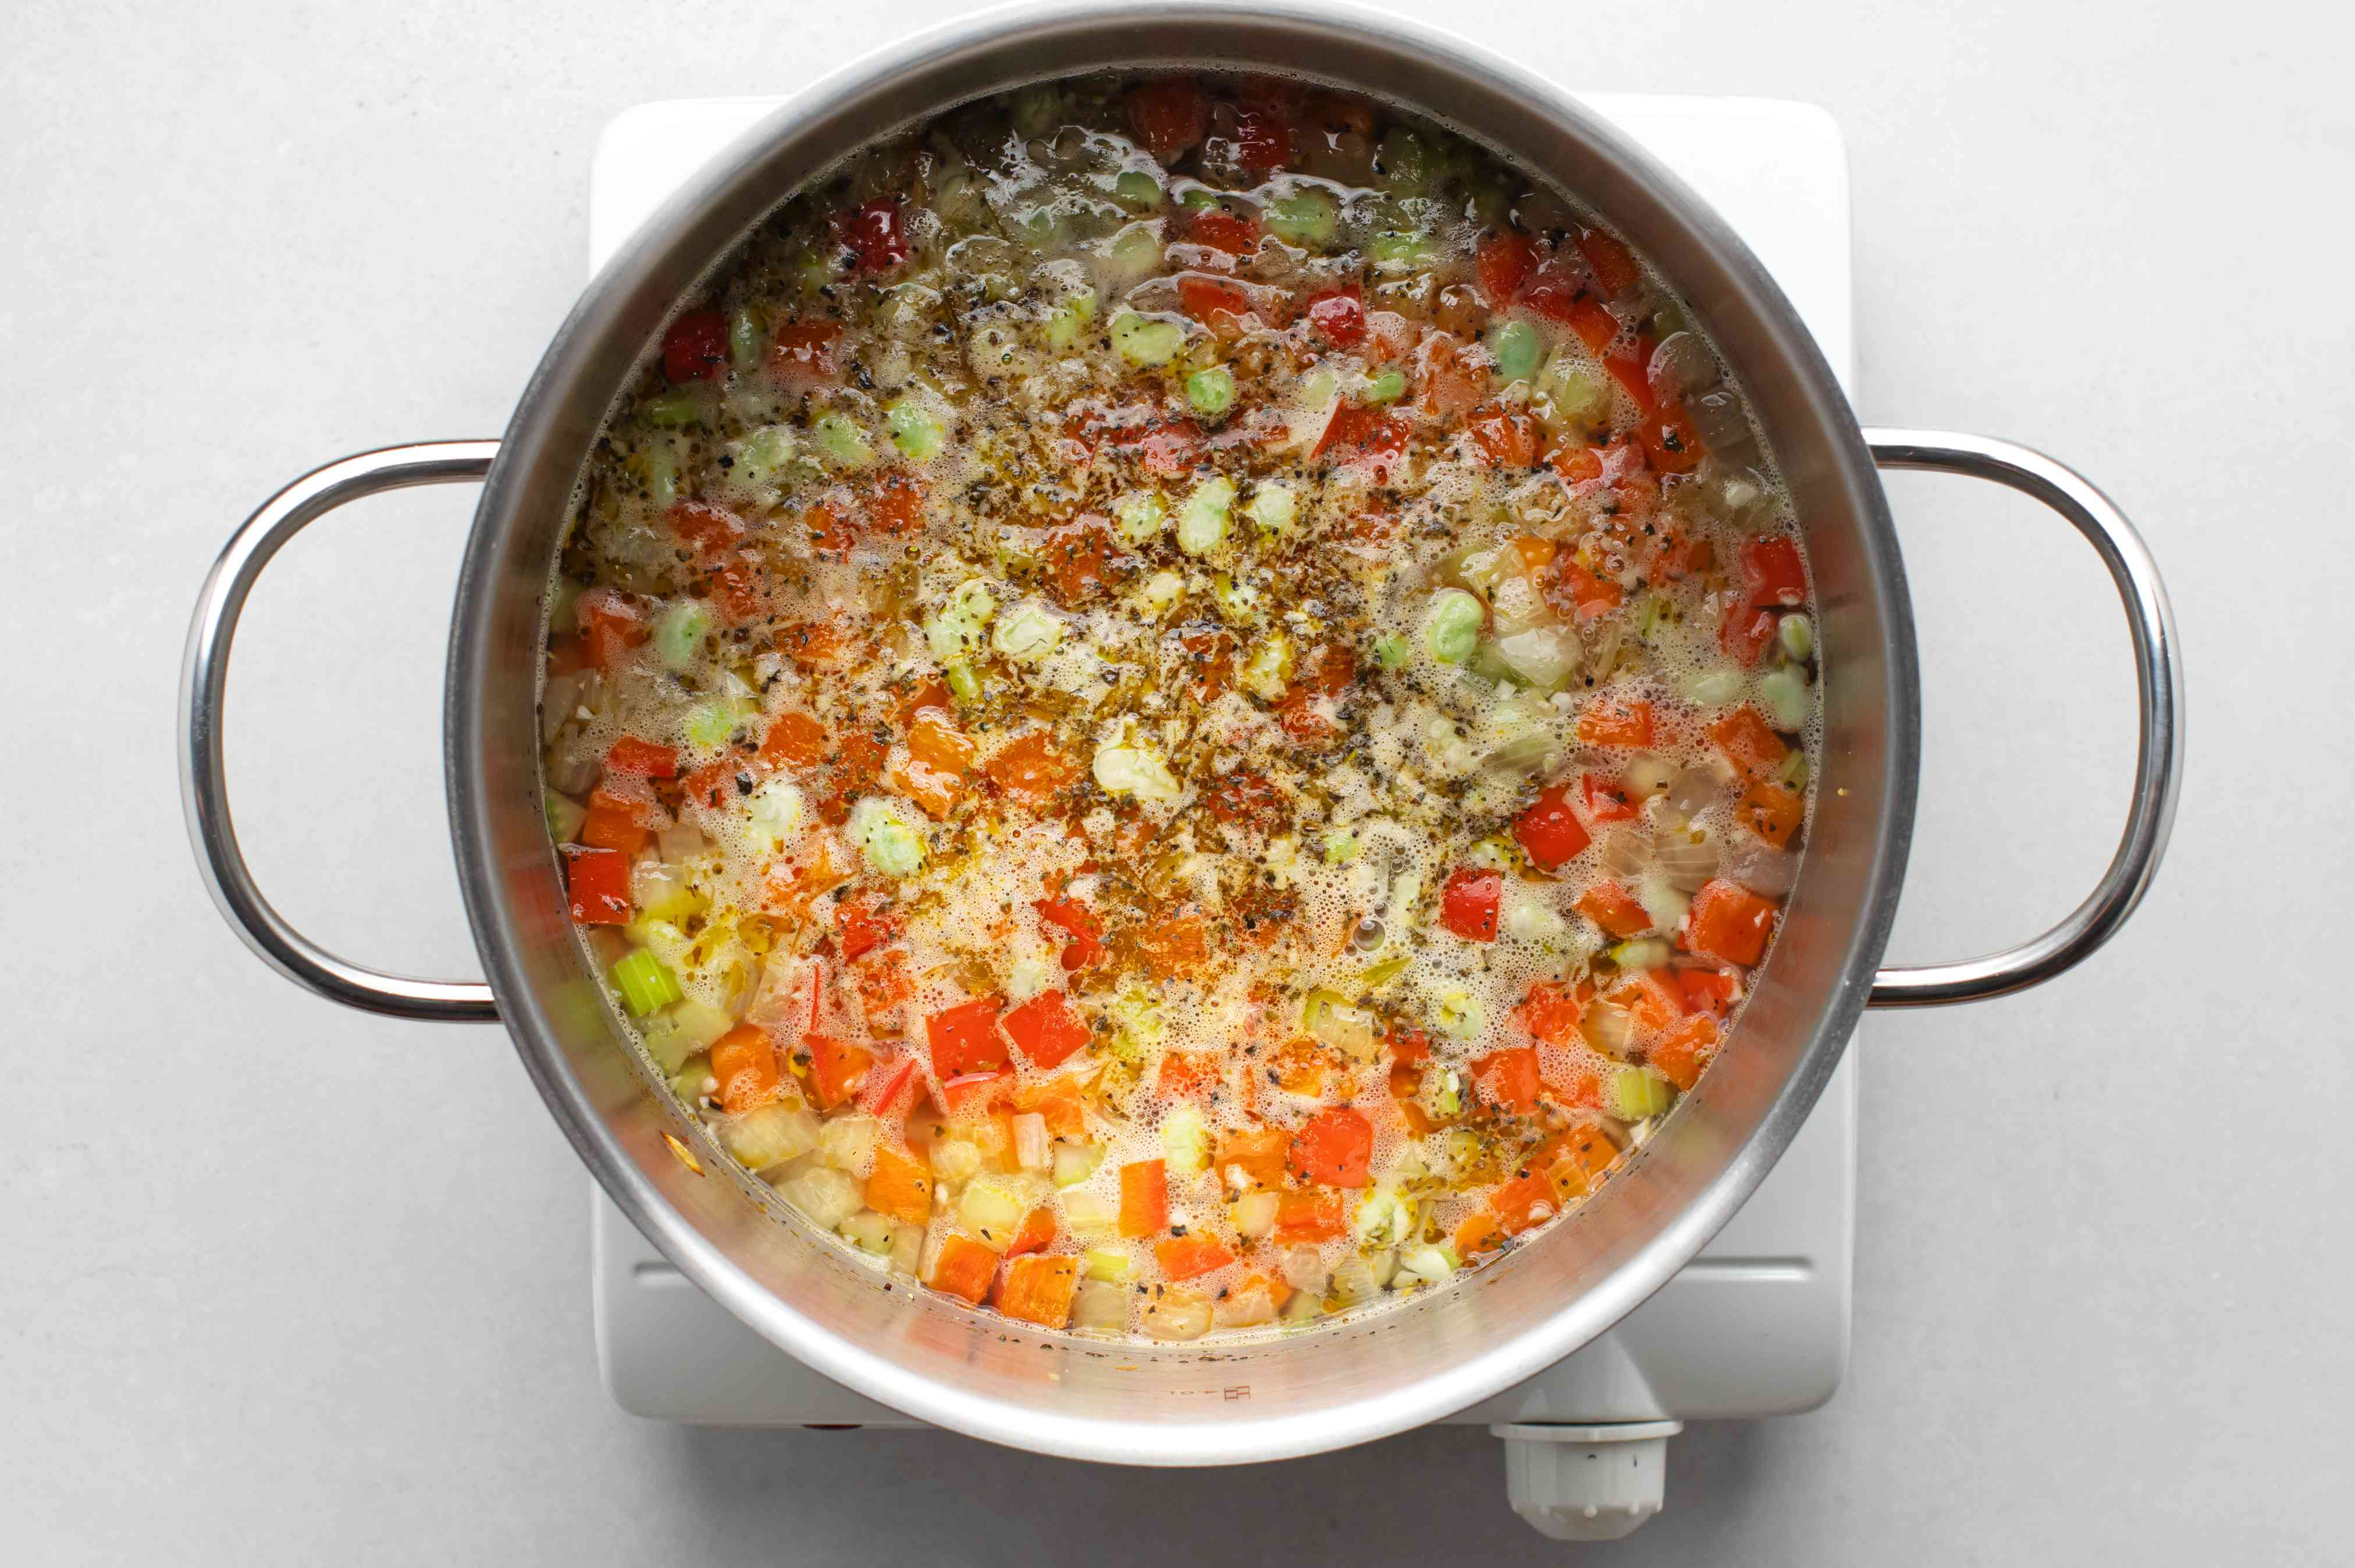 cook the bean soup in the pot